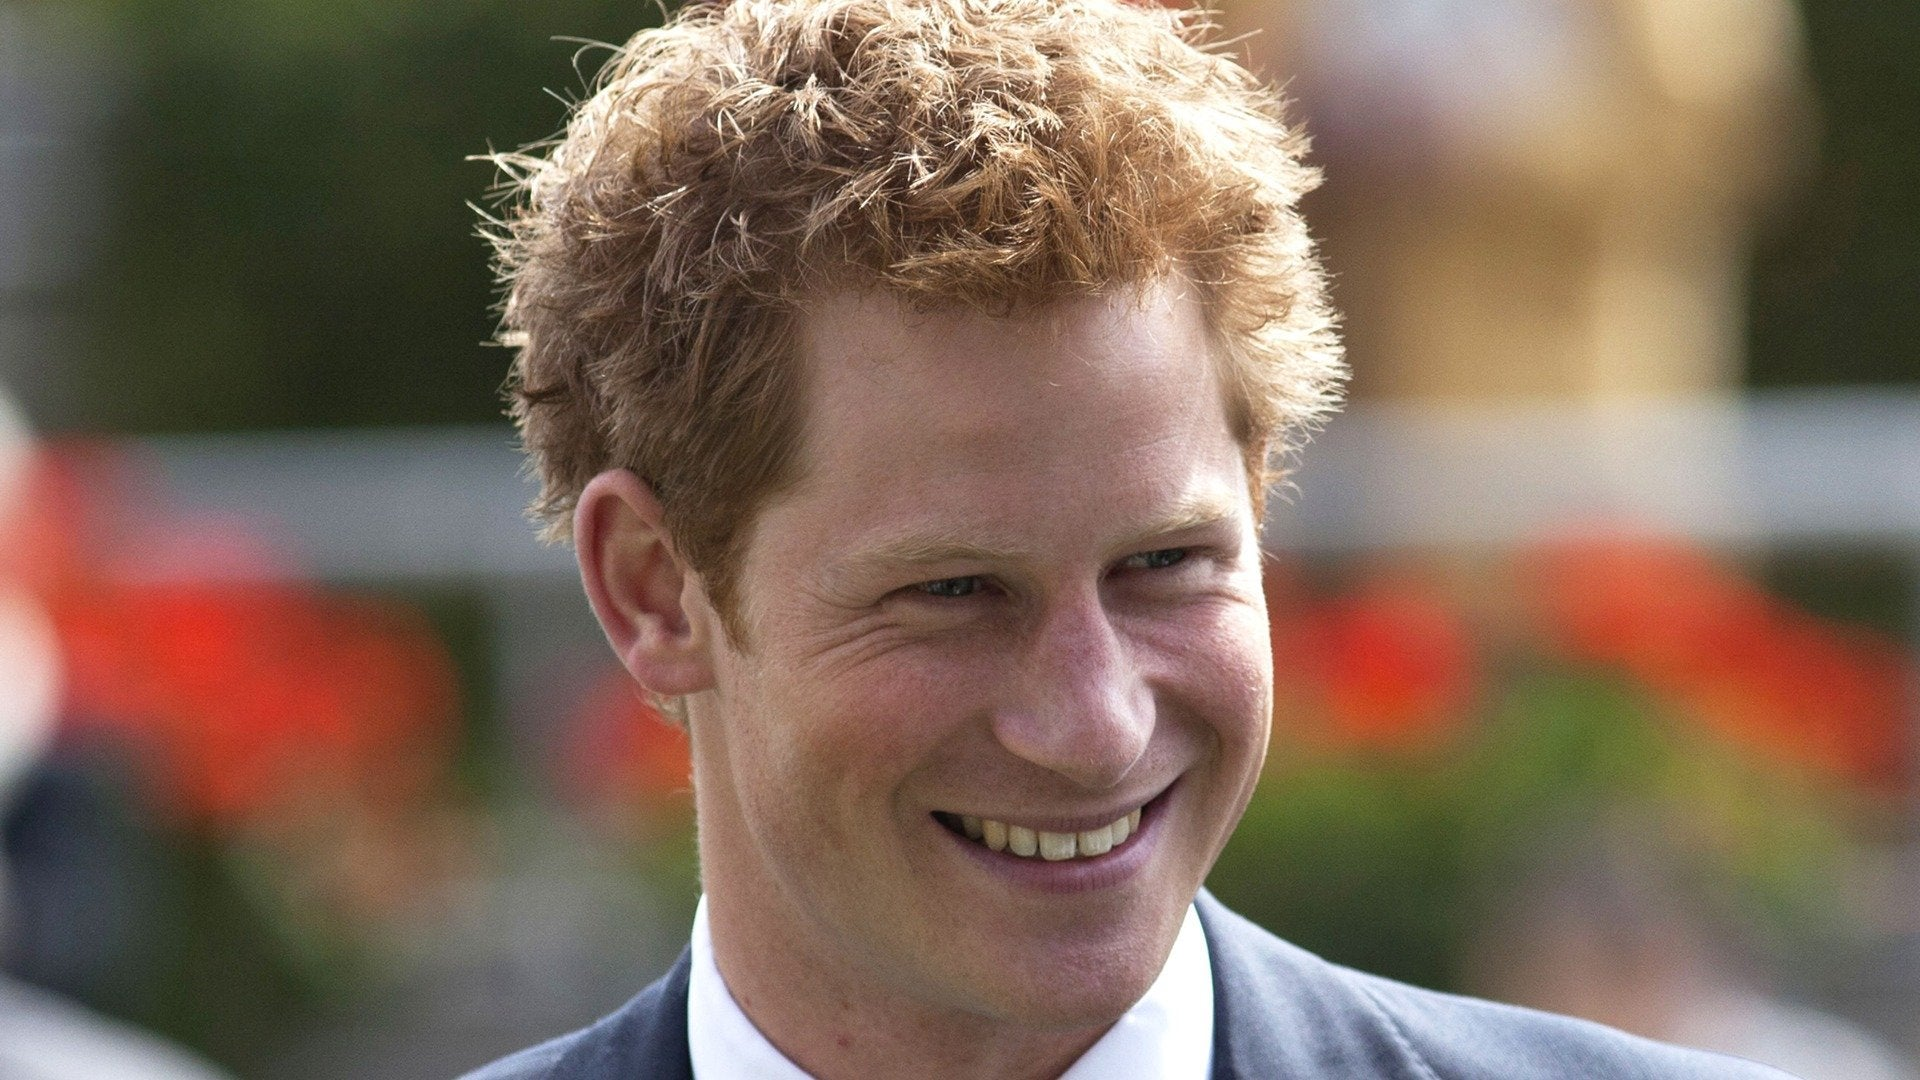 Wild About Prince Harry